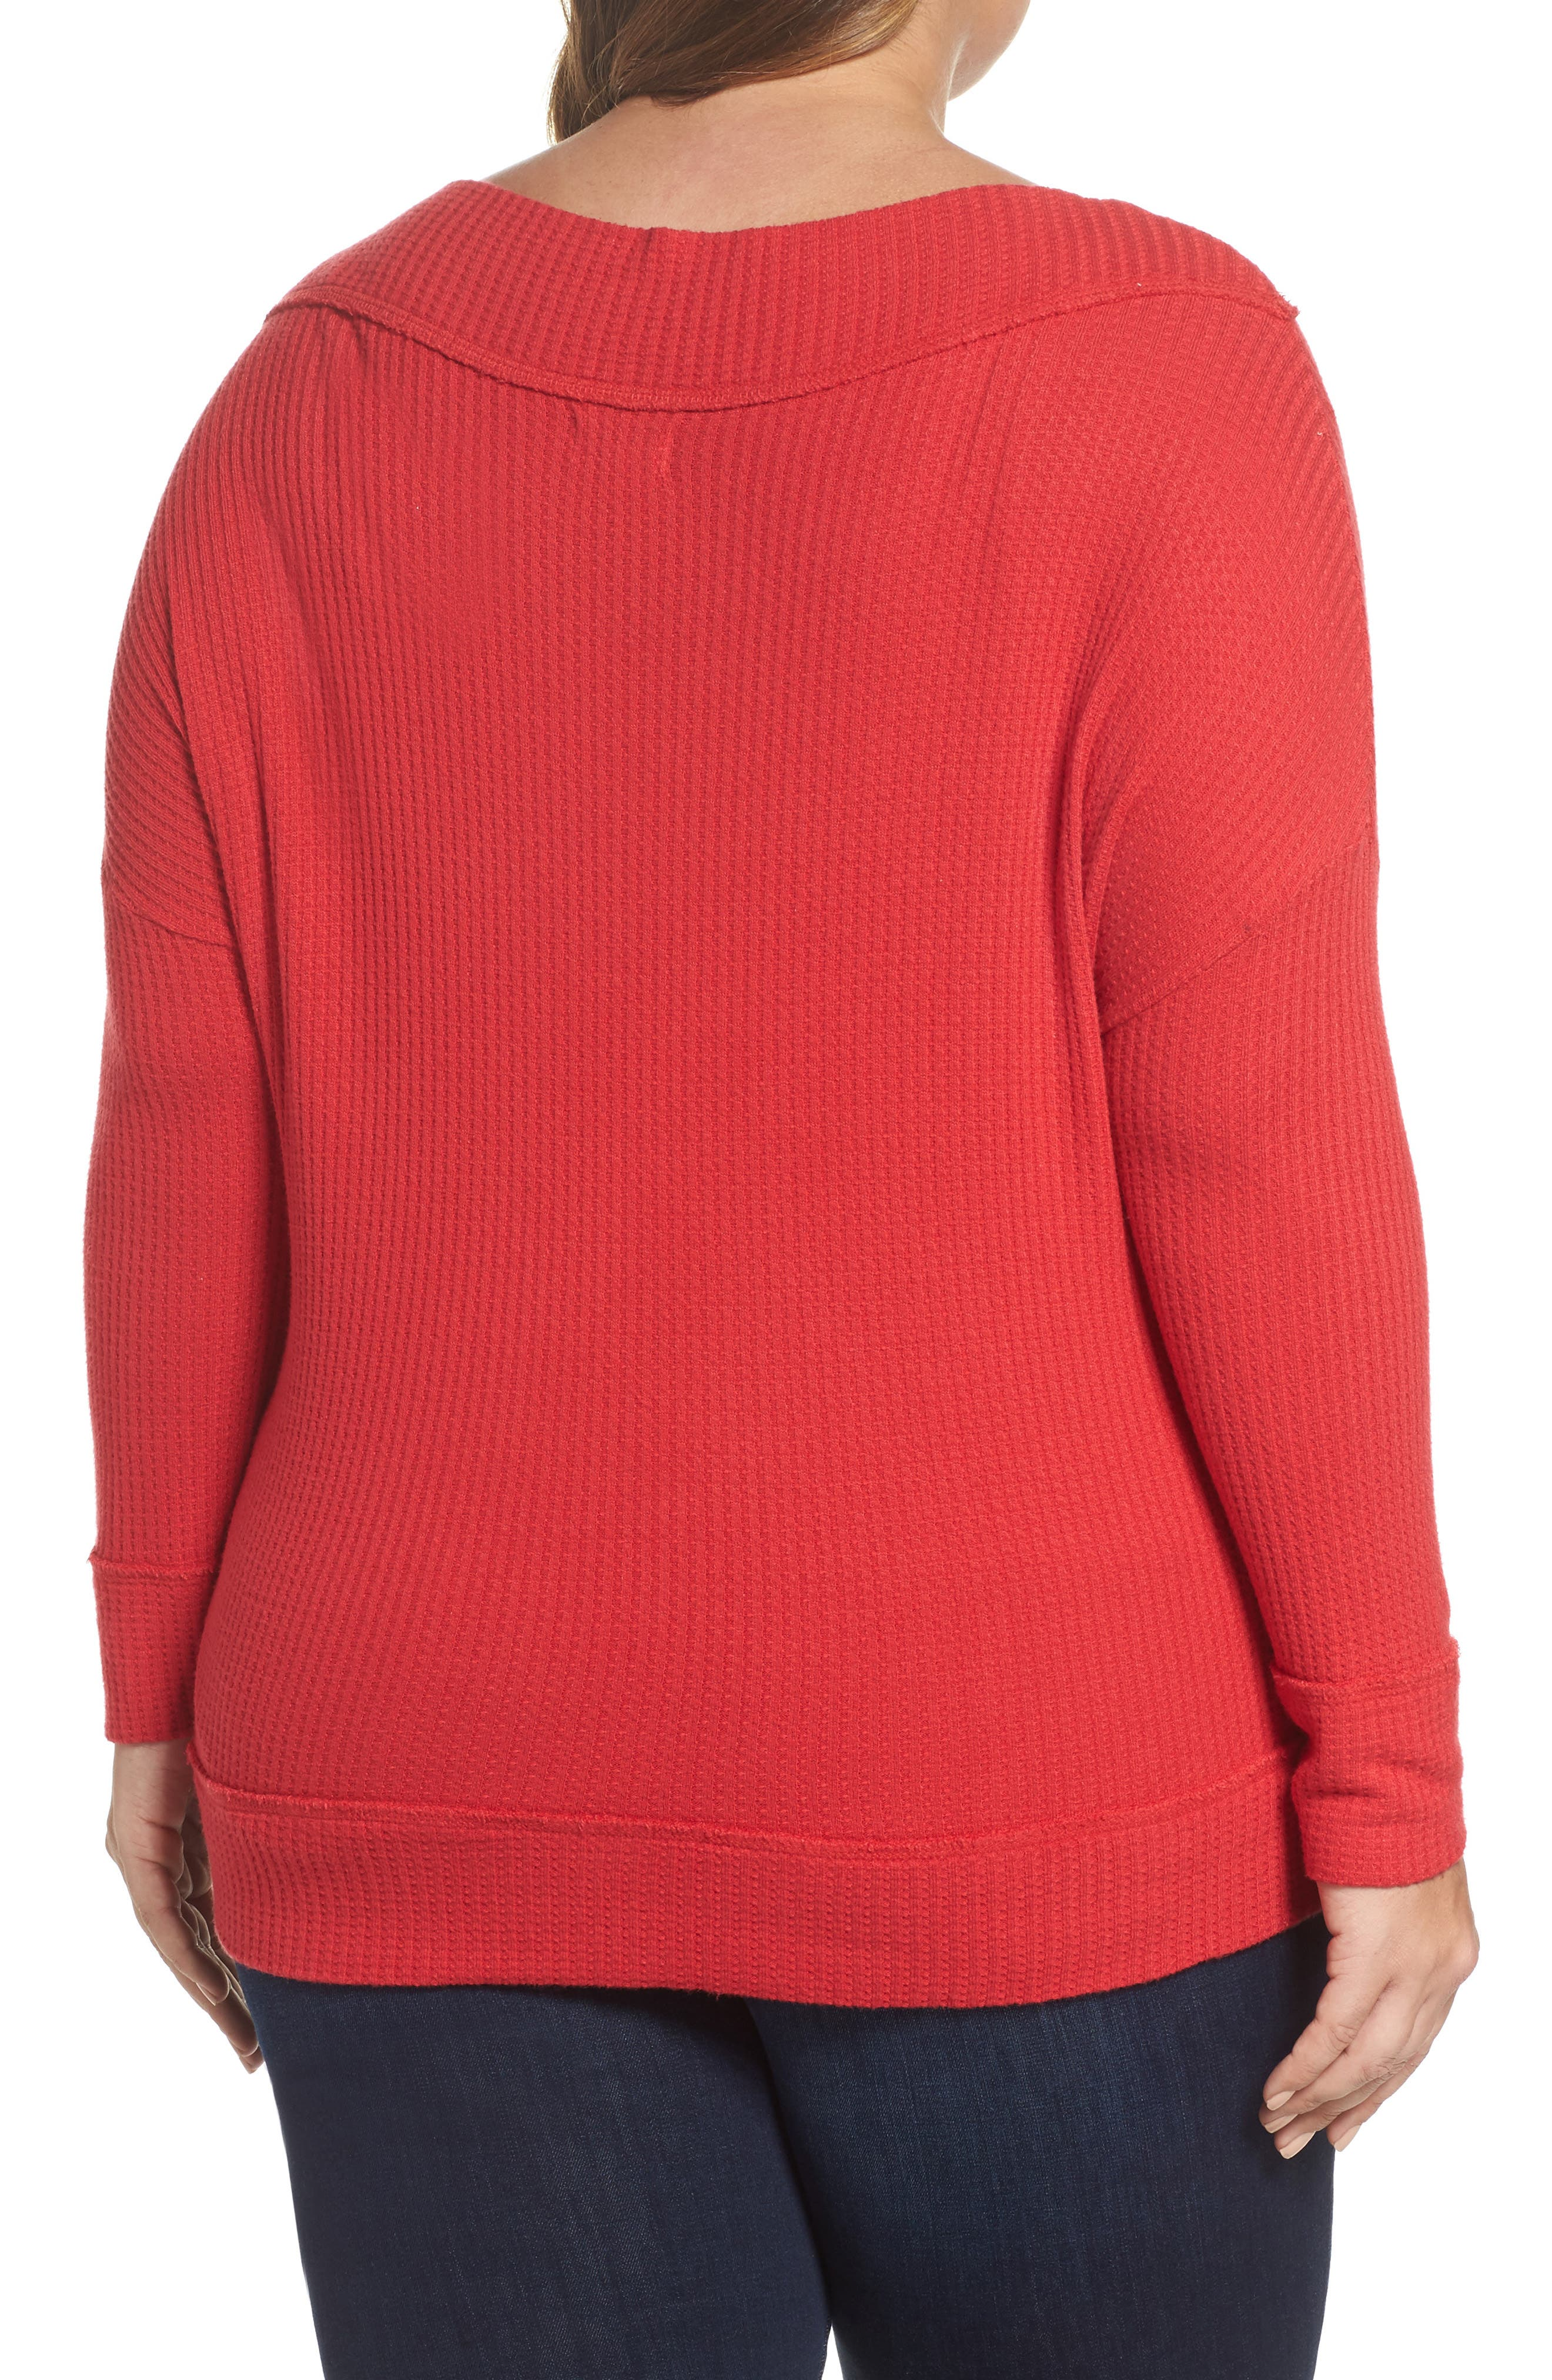 Waffle Thermal Top,                             Alternate thumbnail 4, color,